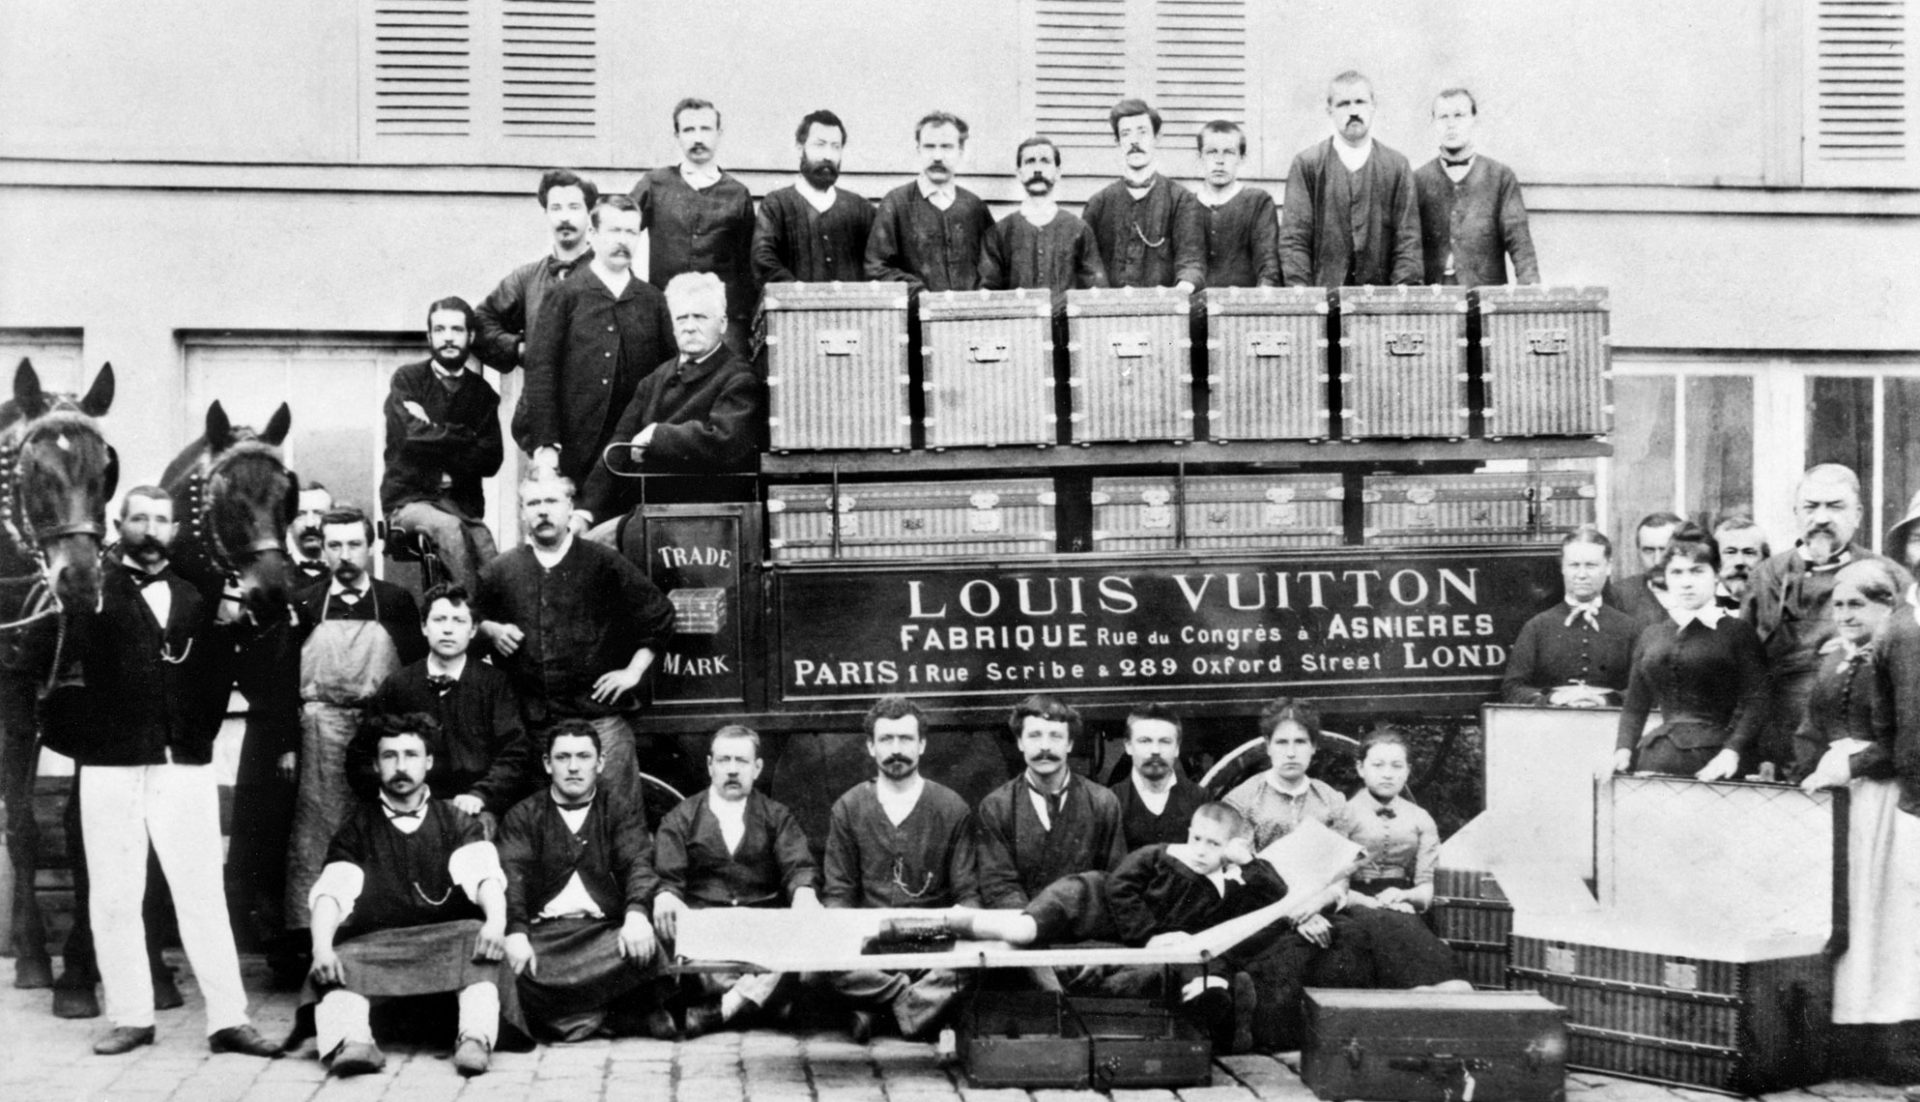 6454c30111c8 Legacy of style louis vuittons voyage to success is the ultimate jpg  1920x1102 Lui vuitton factory